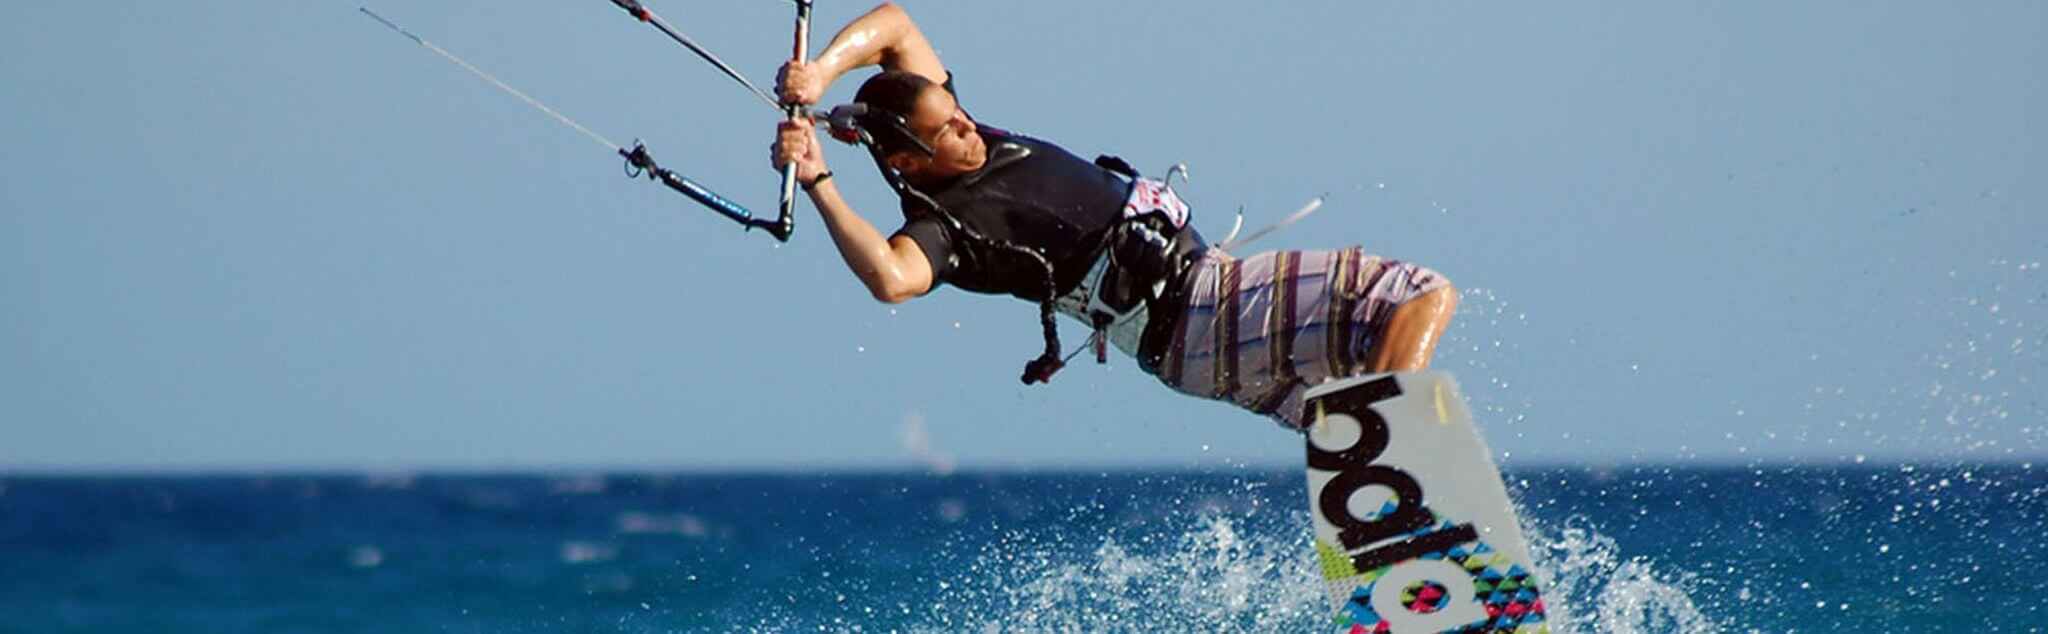 Kitesurfing in Argyll and Bute